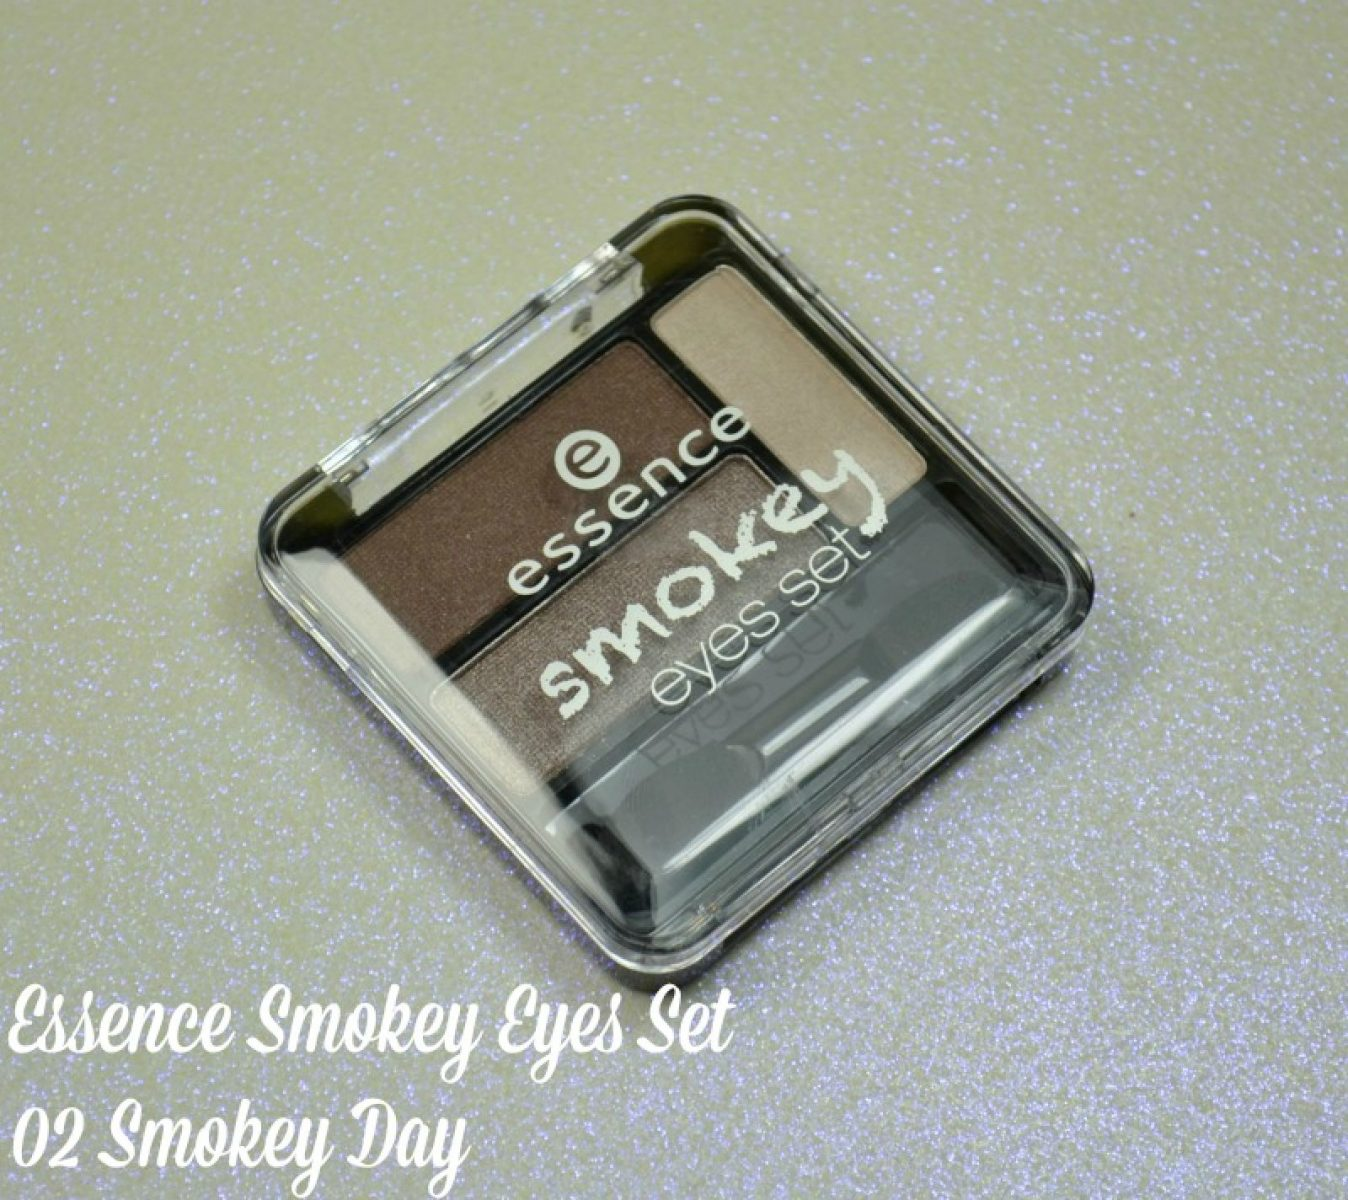 Essence Smokey Eyes Set 02 Smokey Day